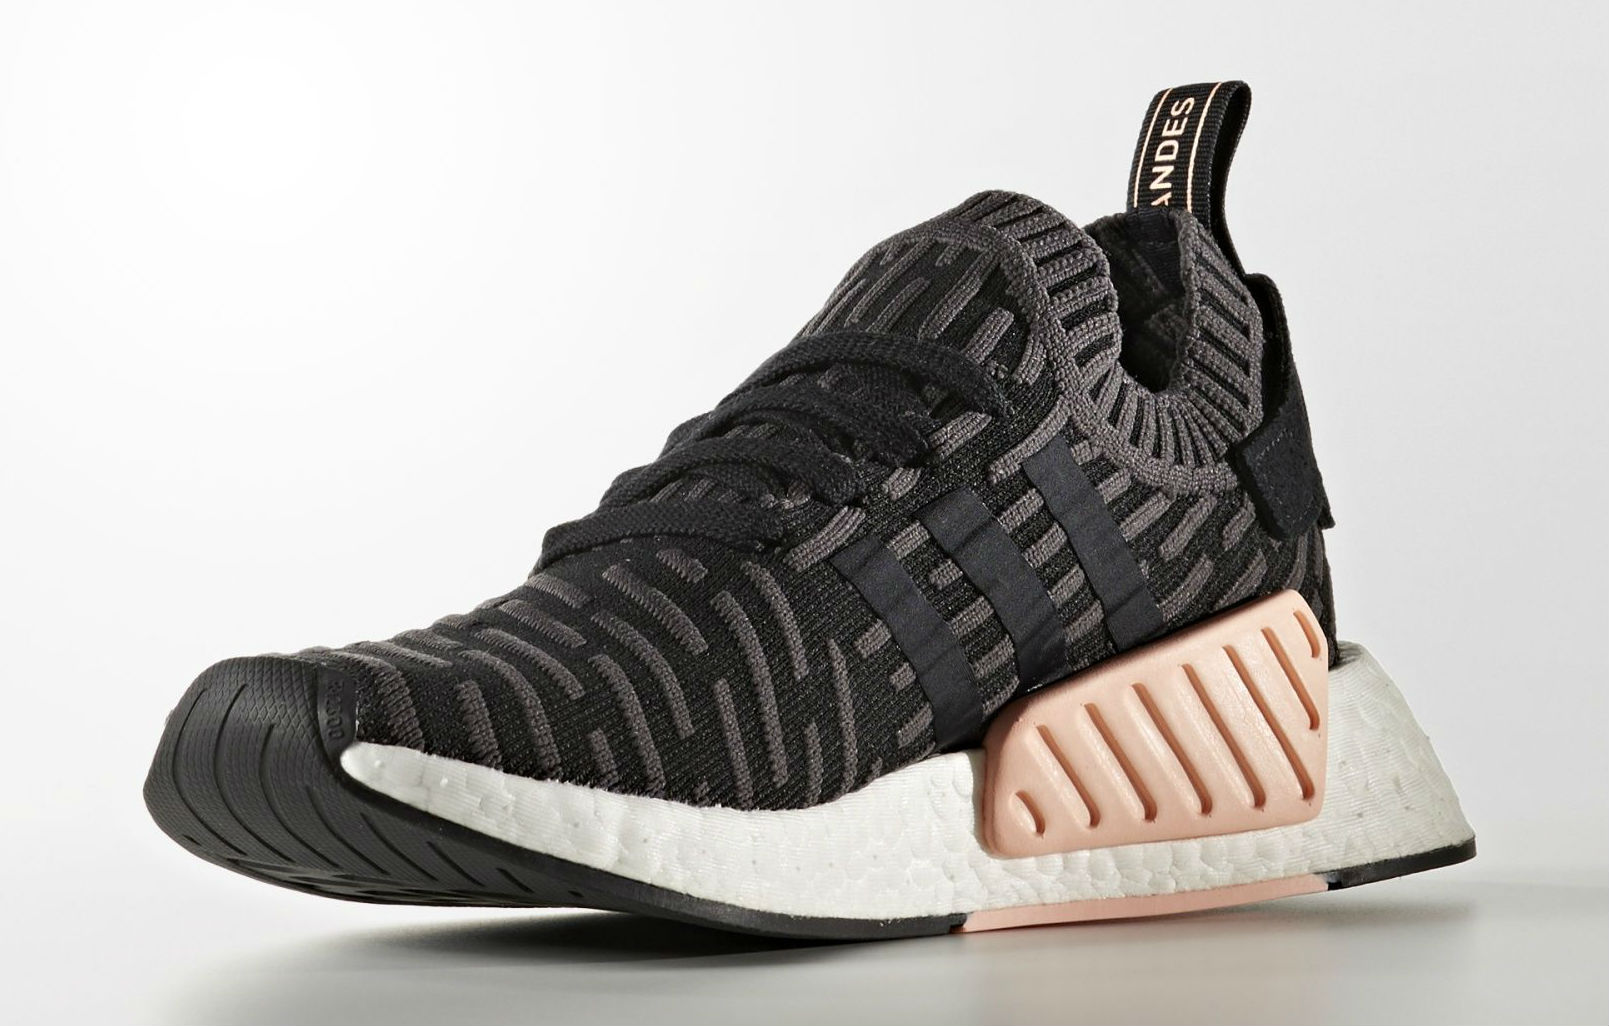 Yup, more NMD R2 colorways are coming this Spring